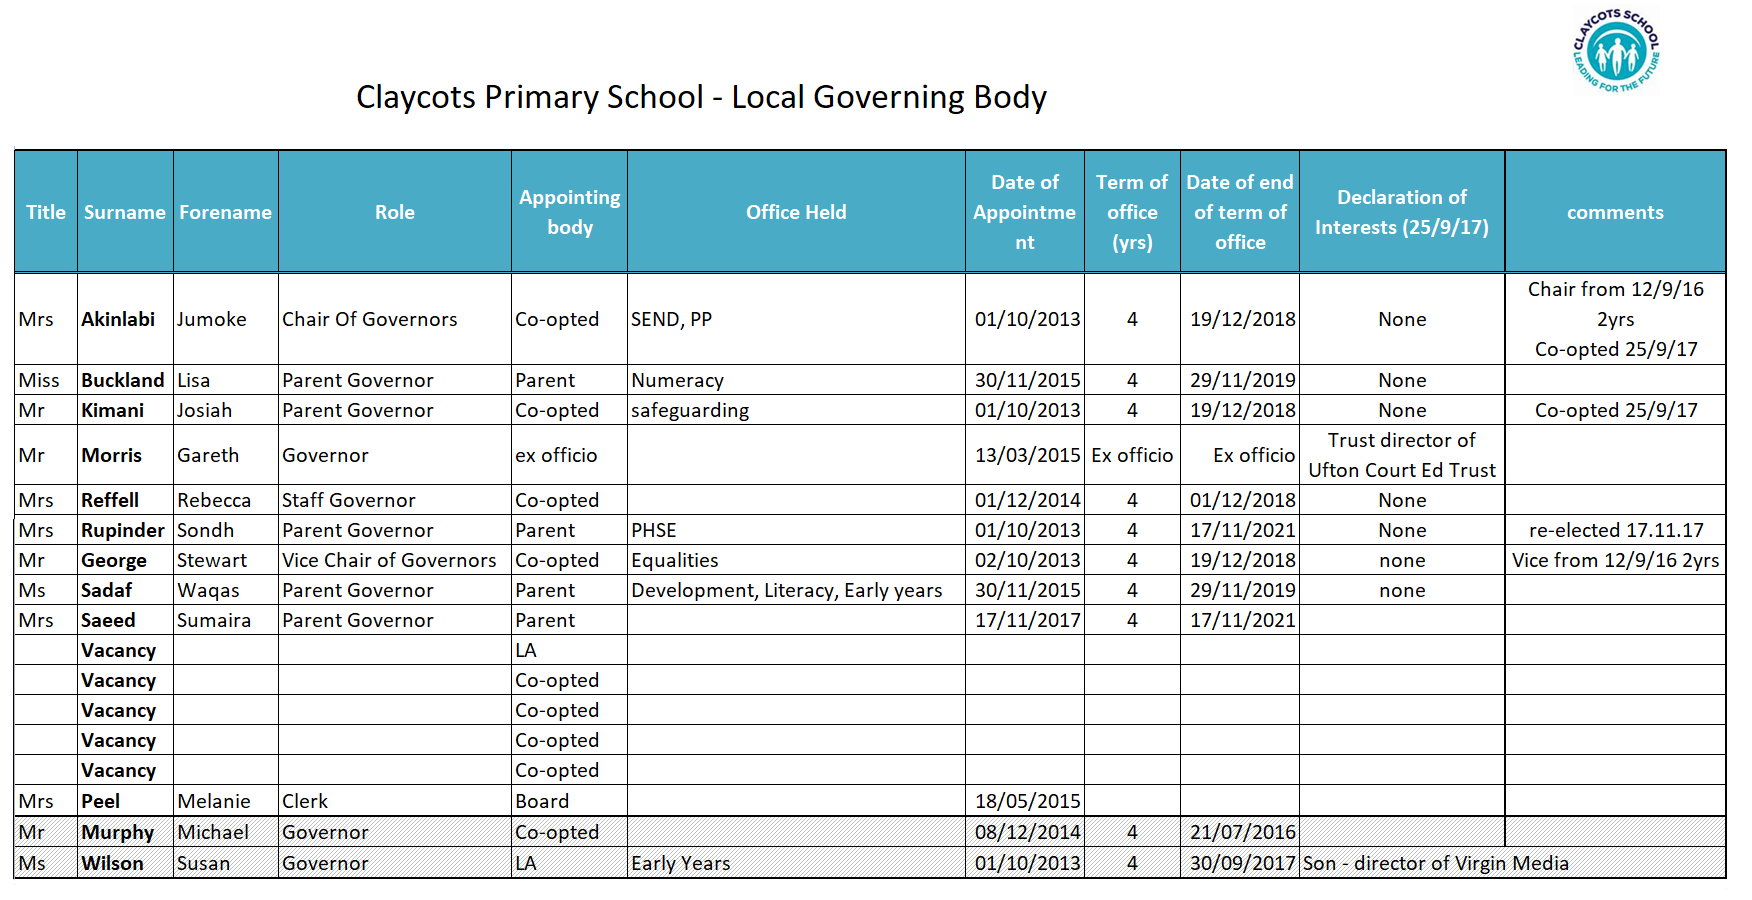 New claycots primary school local governing body